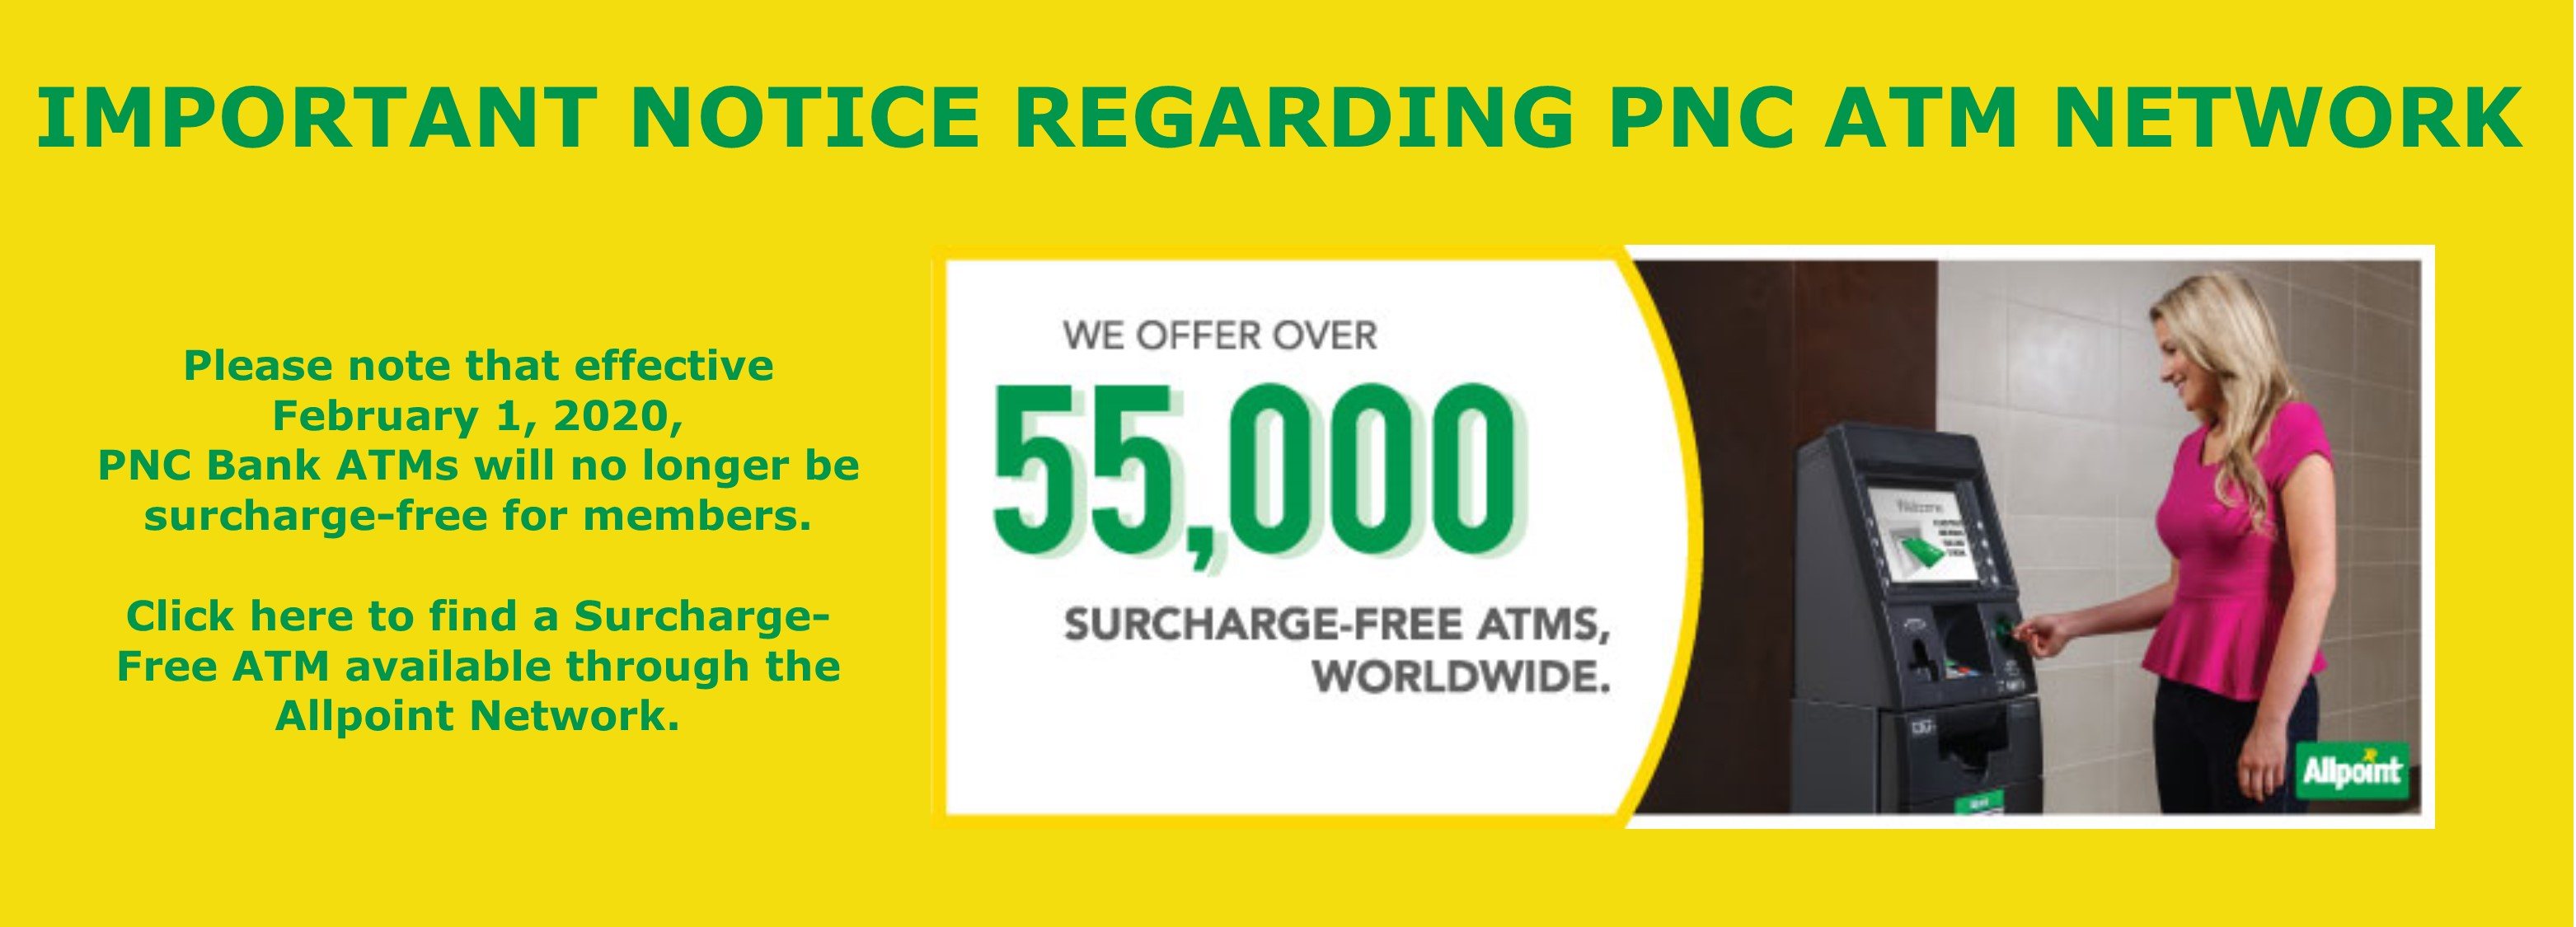 Effective Feb 1 2020, PNC Bank ATMs will no longer be surcharge-free for members; visit https://www.hefcu.com/locations-hours/ to find other surcharge-free ATMs